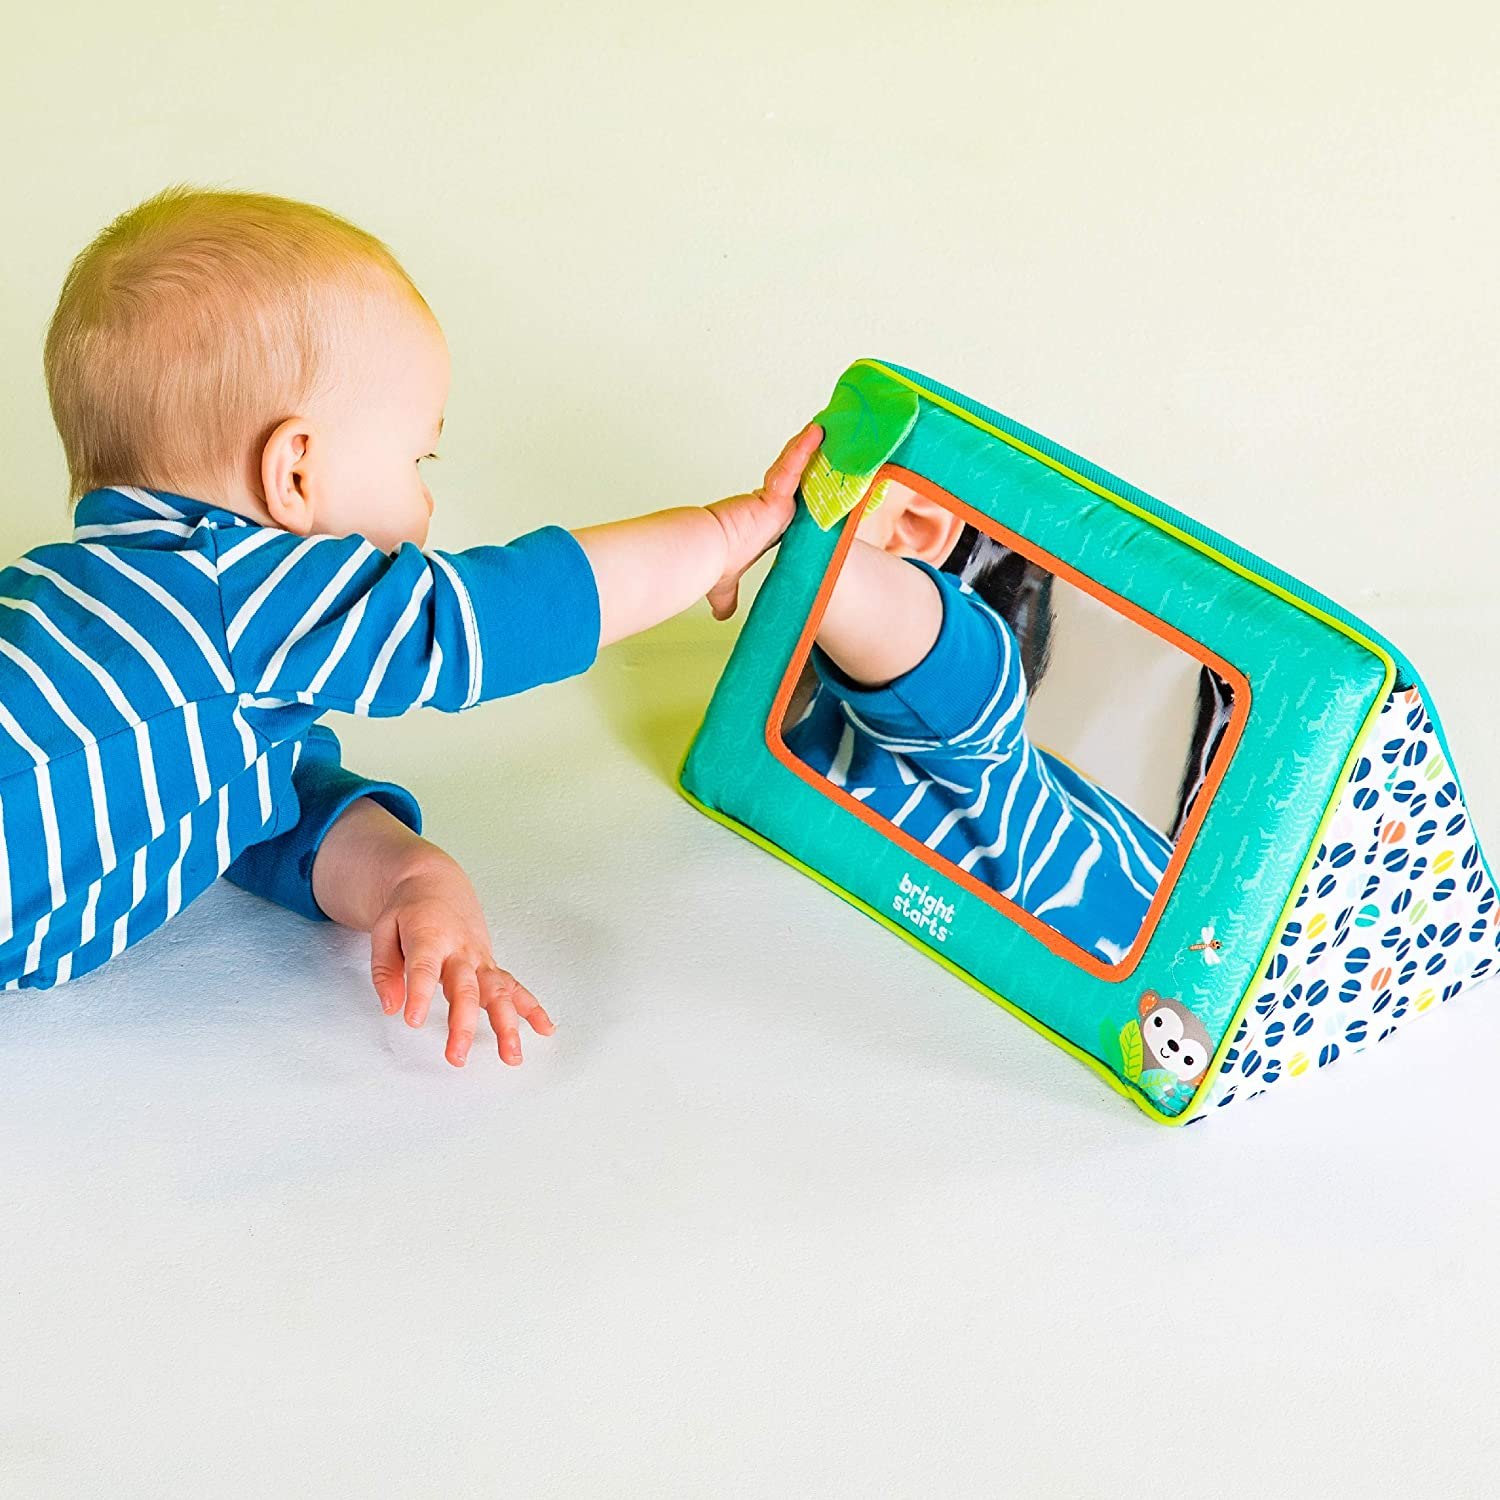 Baby Floor Mirror Toy Sensory Toy for Baby Toddler Play /& Self-Discovery